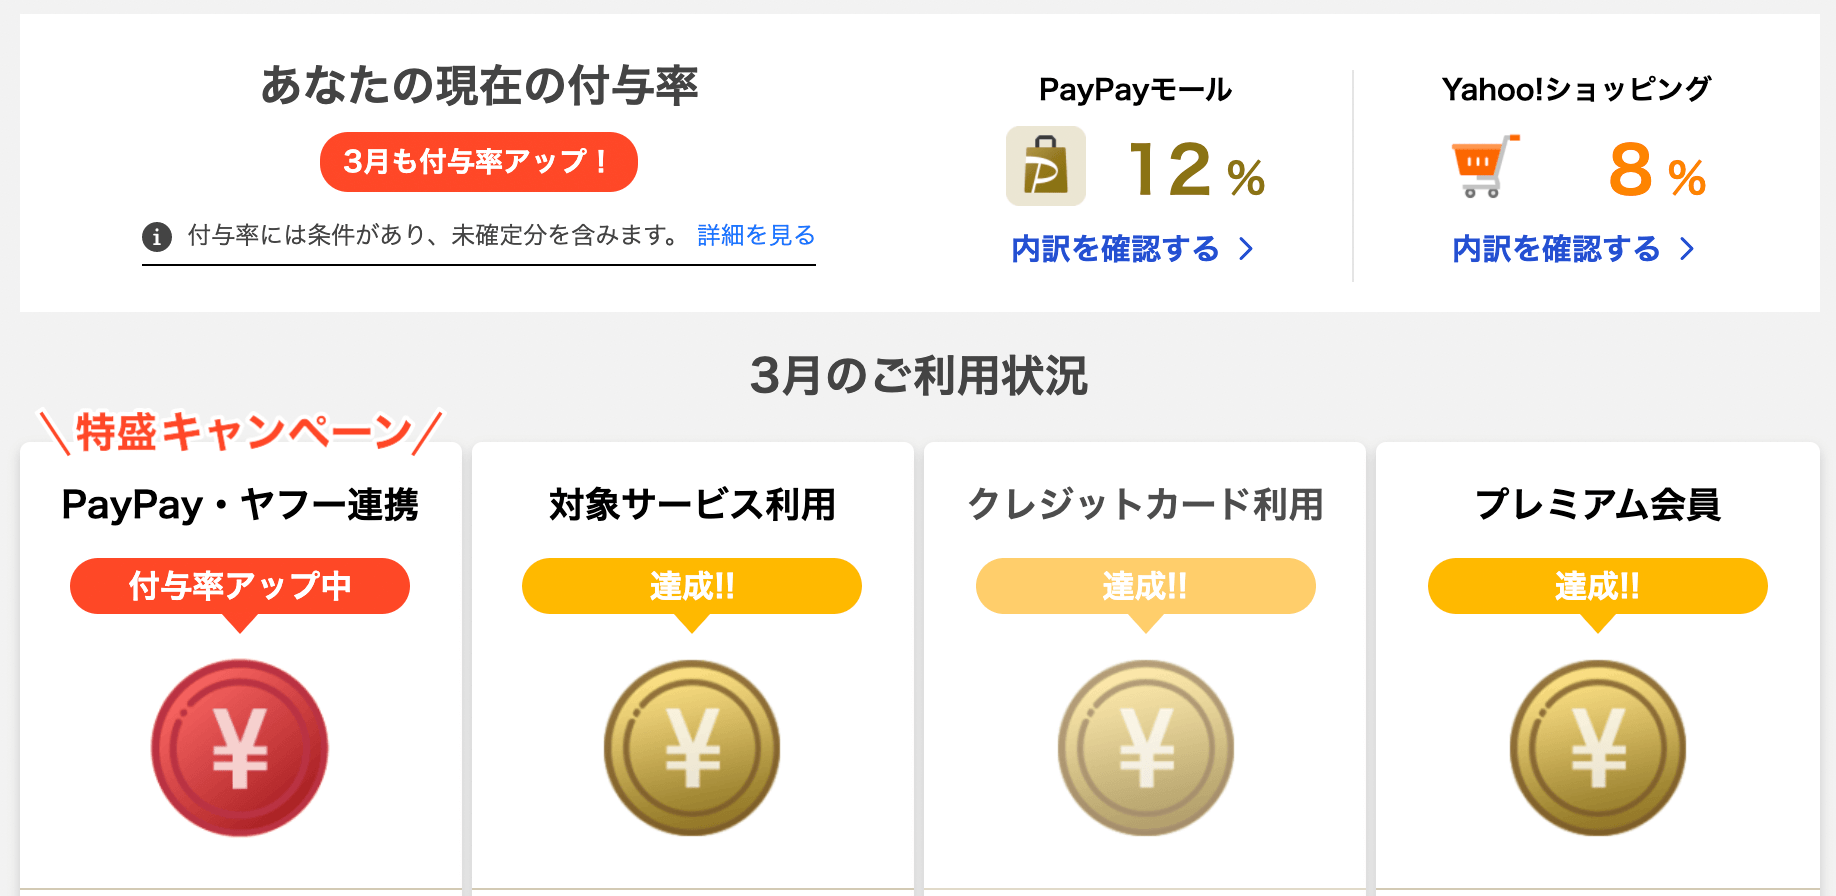 PayPay STEP攻略